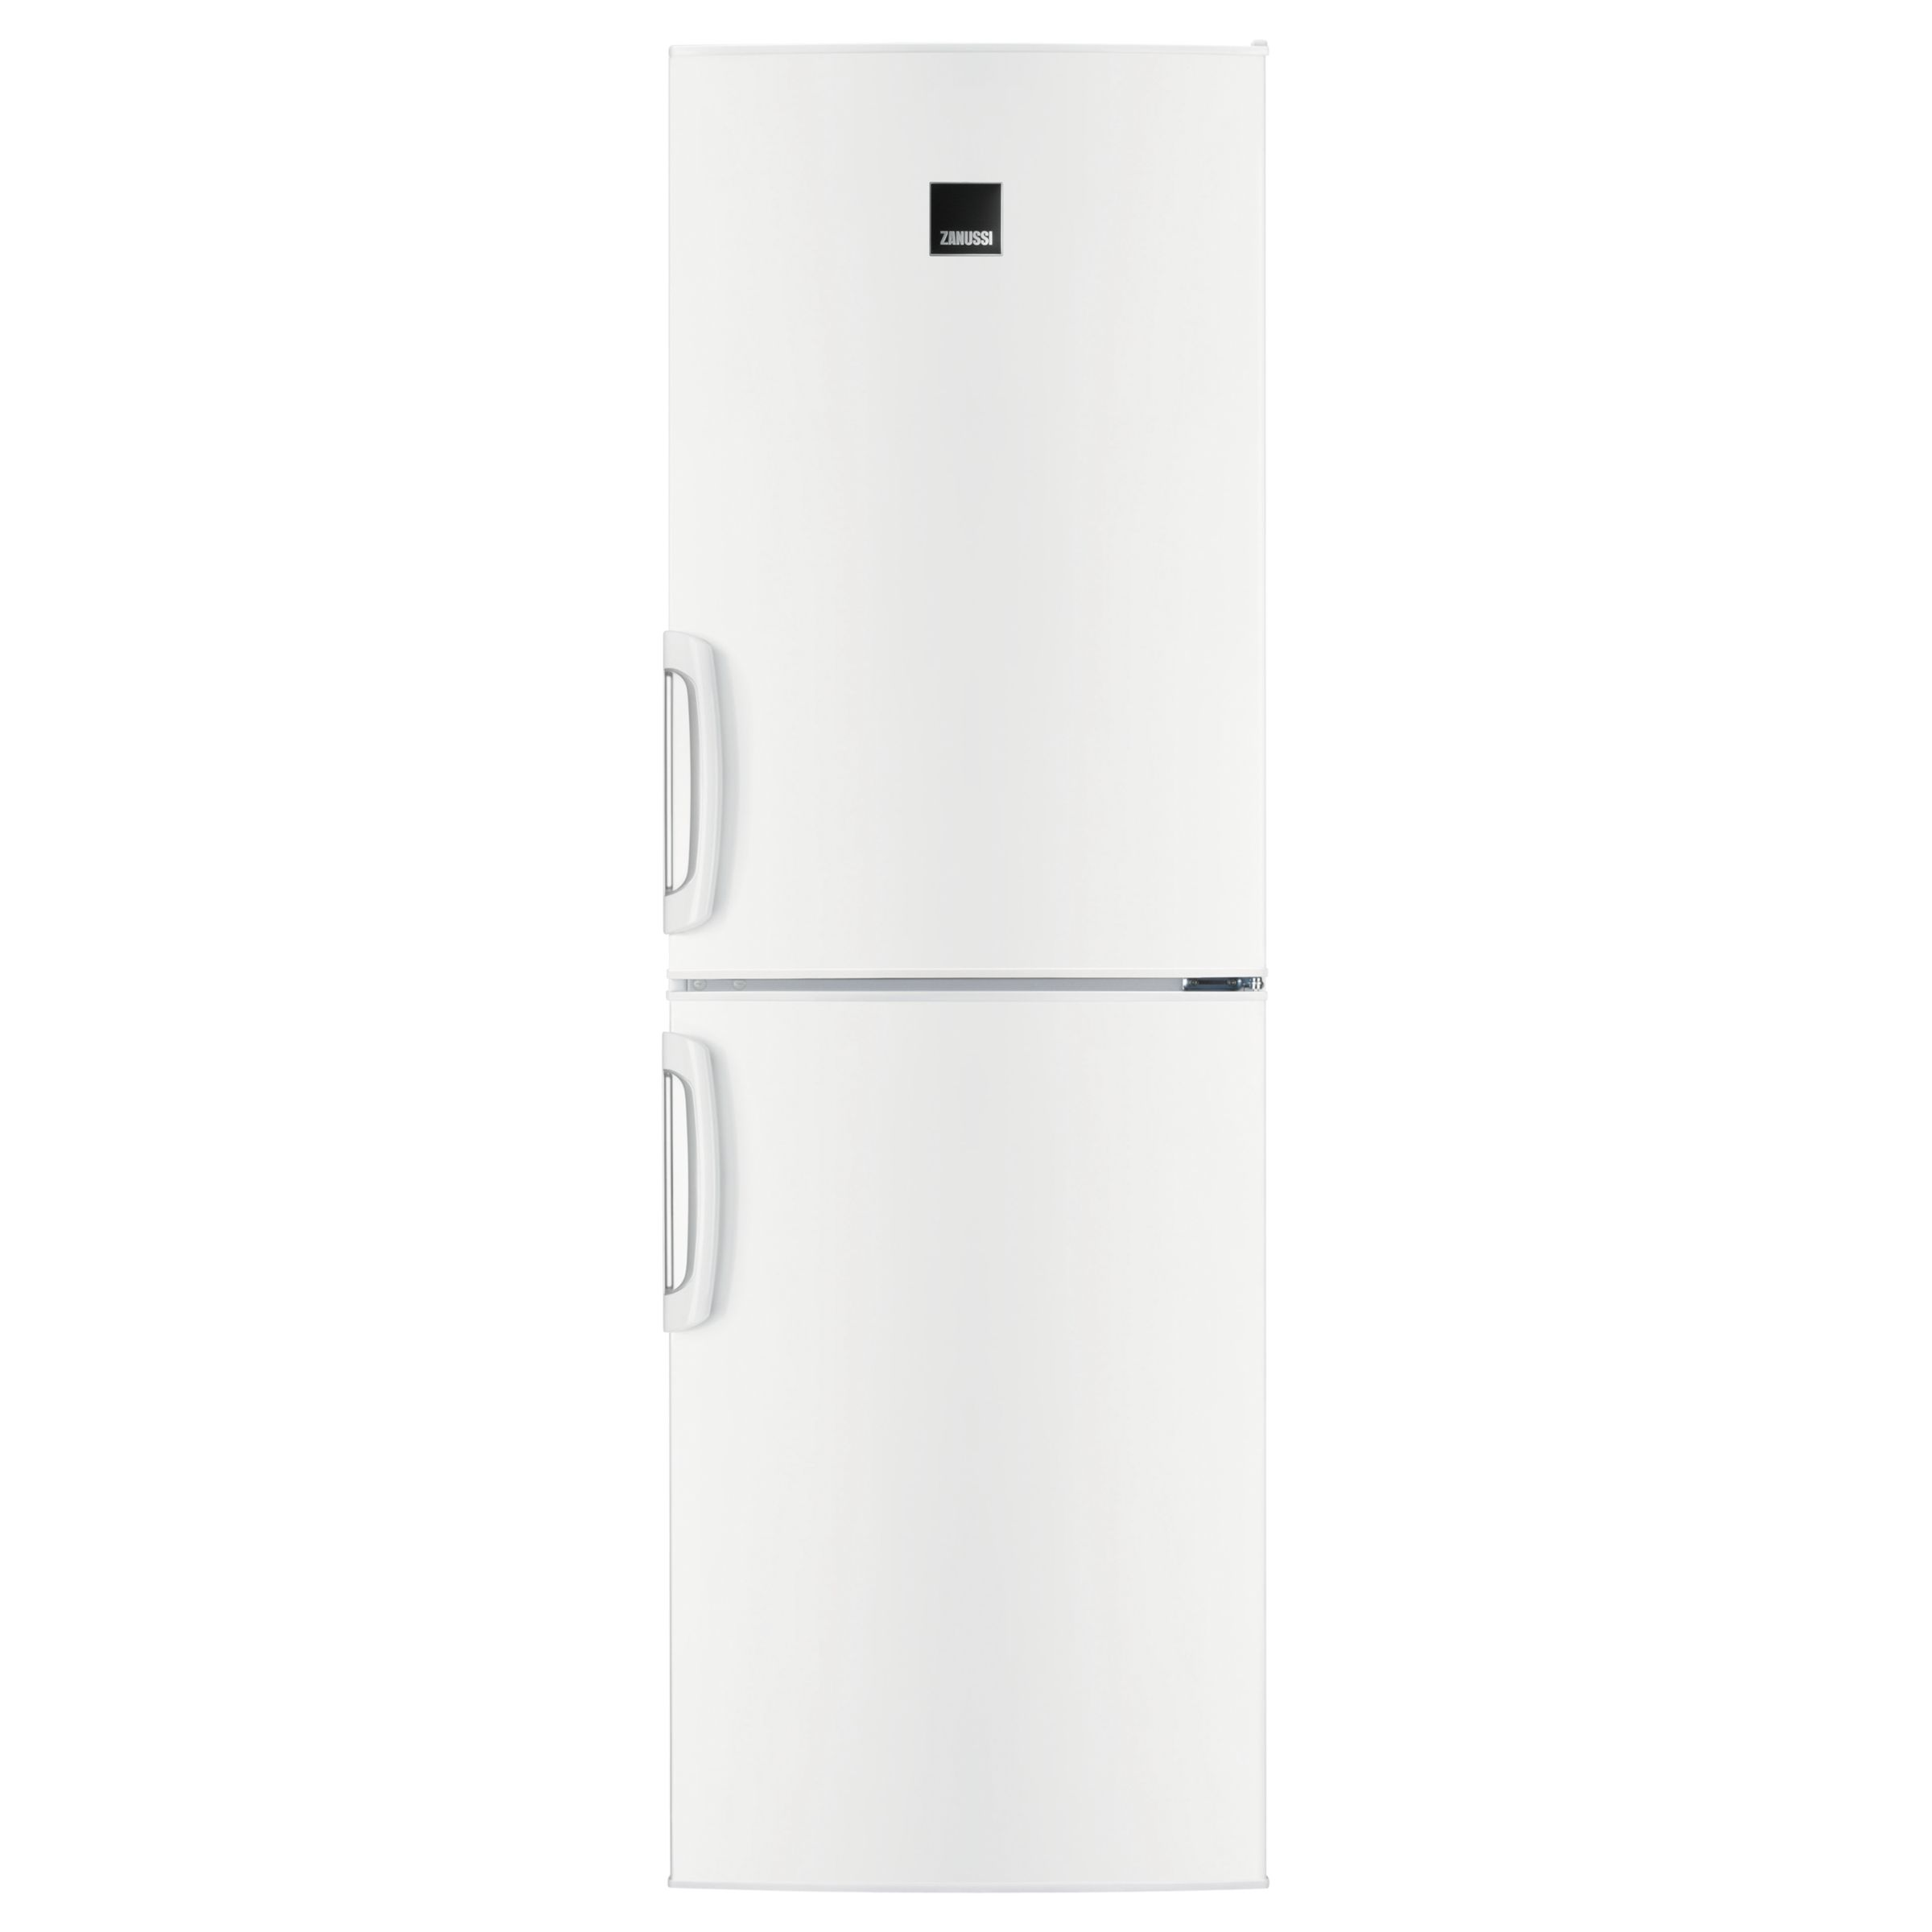 Zanussi Zanussi ZRB34426WV Fridge Freezer, A++ Energy Rating, 60cm Wide